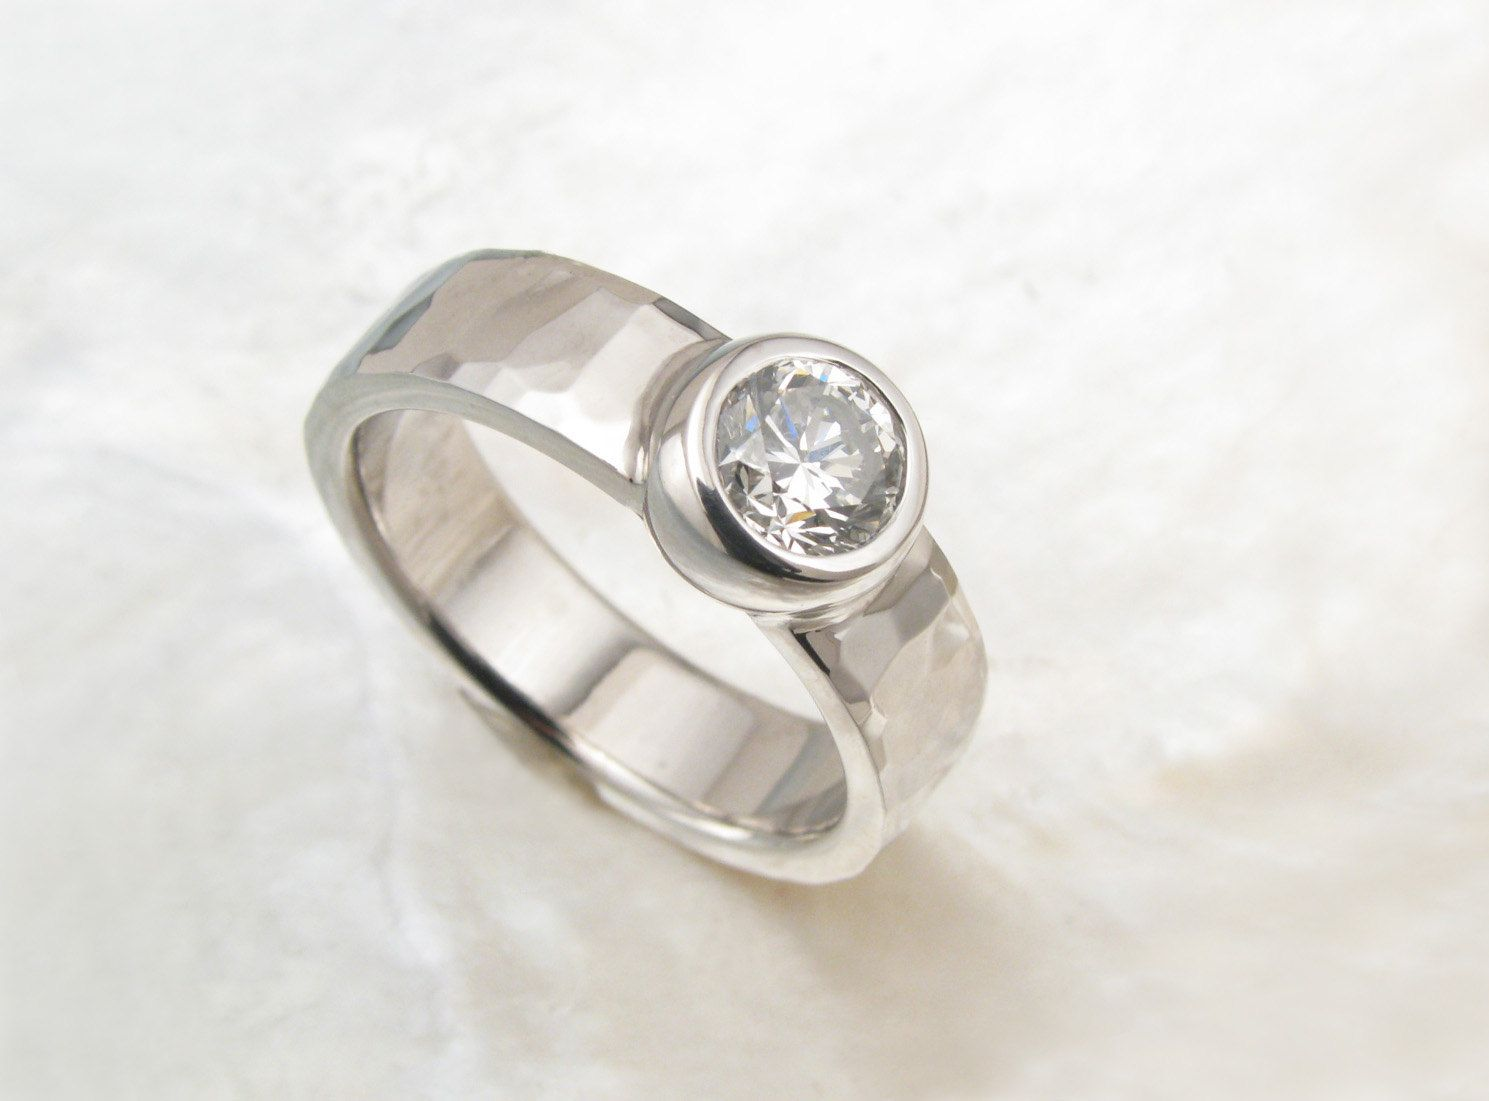 Handmade Bezel Diamond Engagement Ring With 14k White Gold Hammered Band  $2,72500, Via Etsy